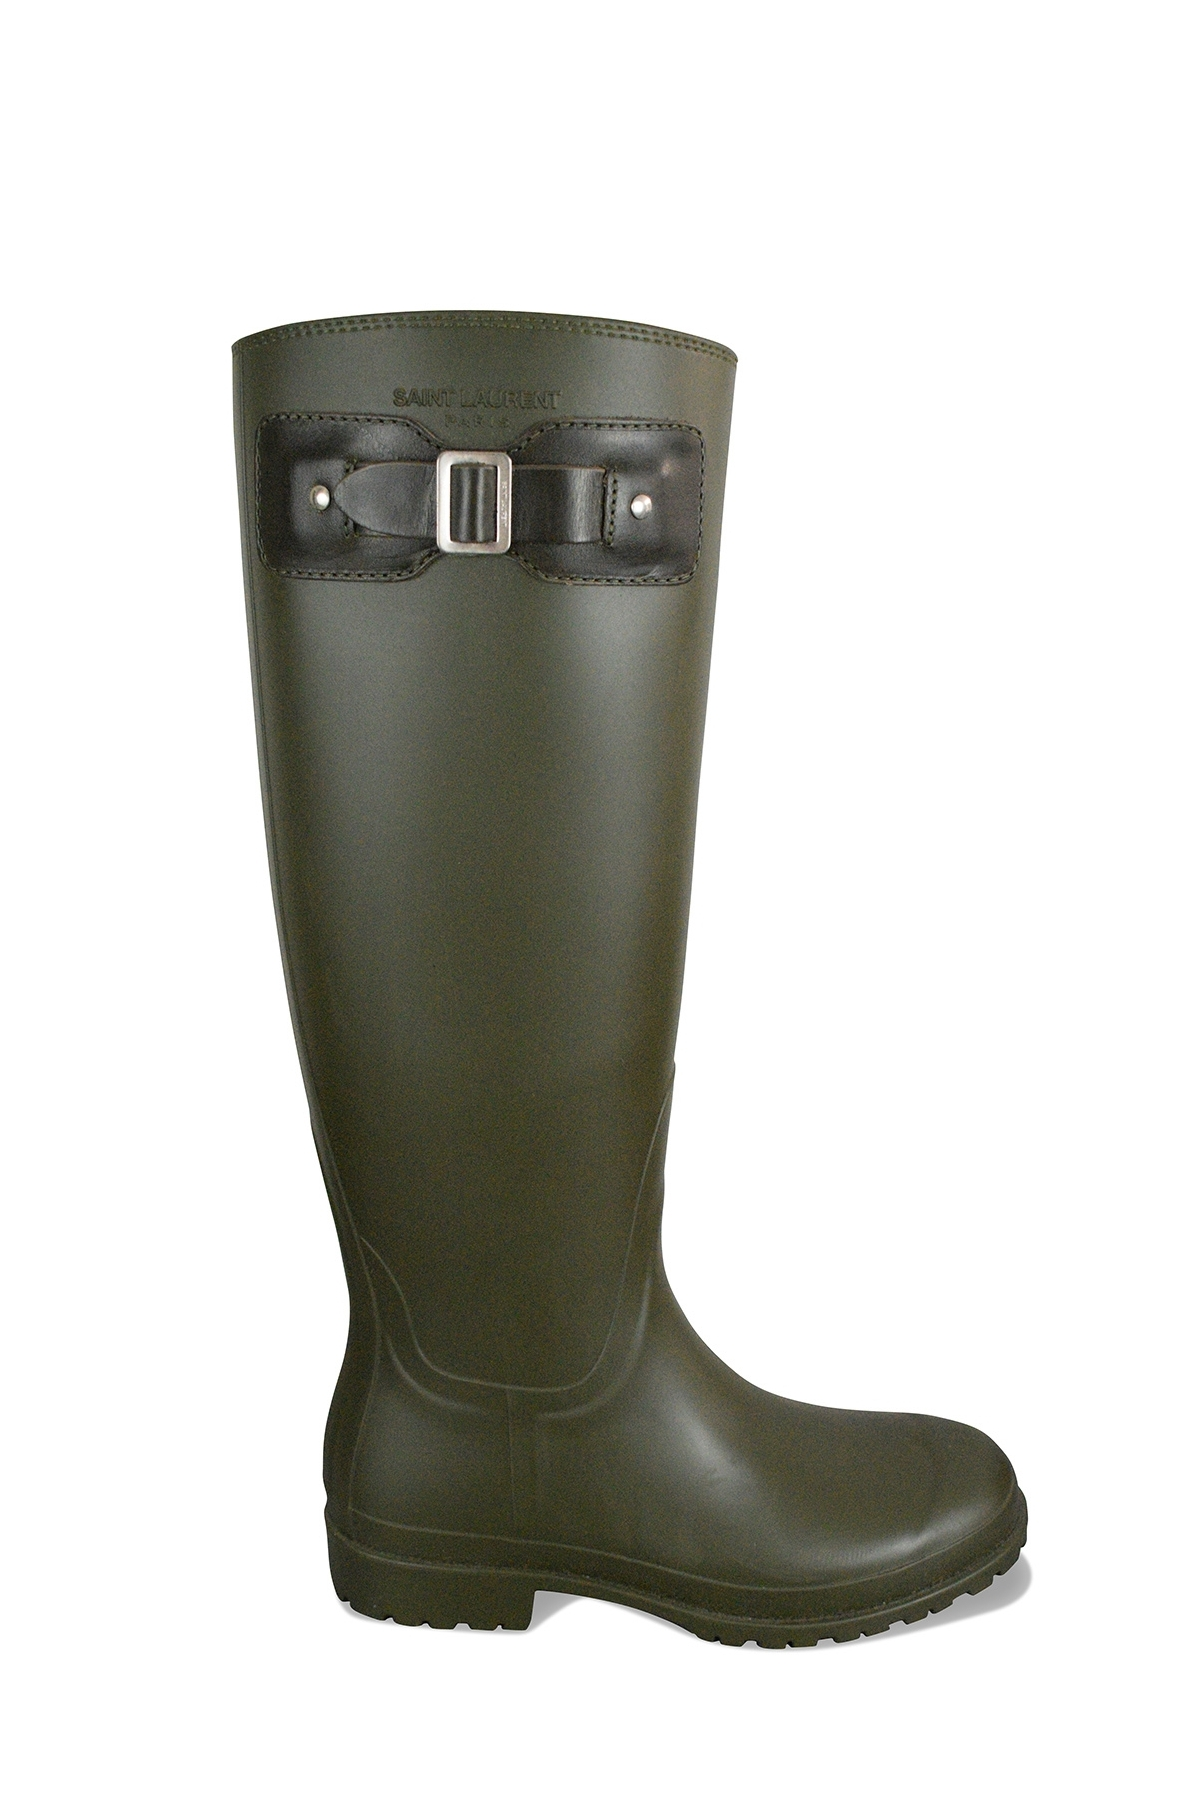 Saint Laurent kaki rubber boots with leather strap with buckle at top outer side